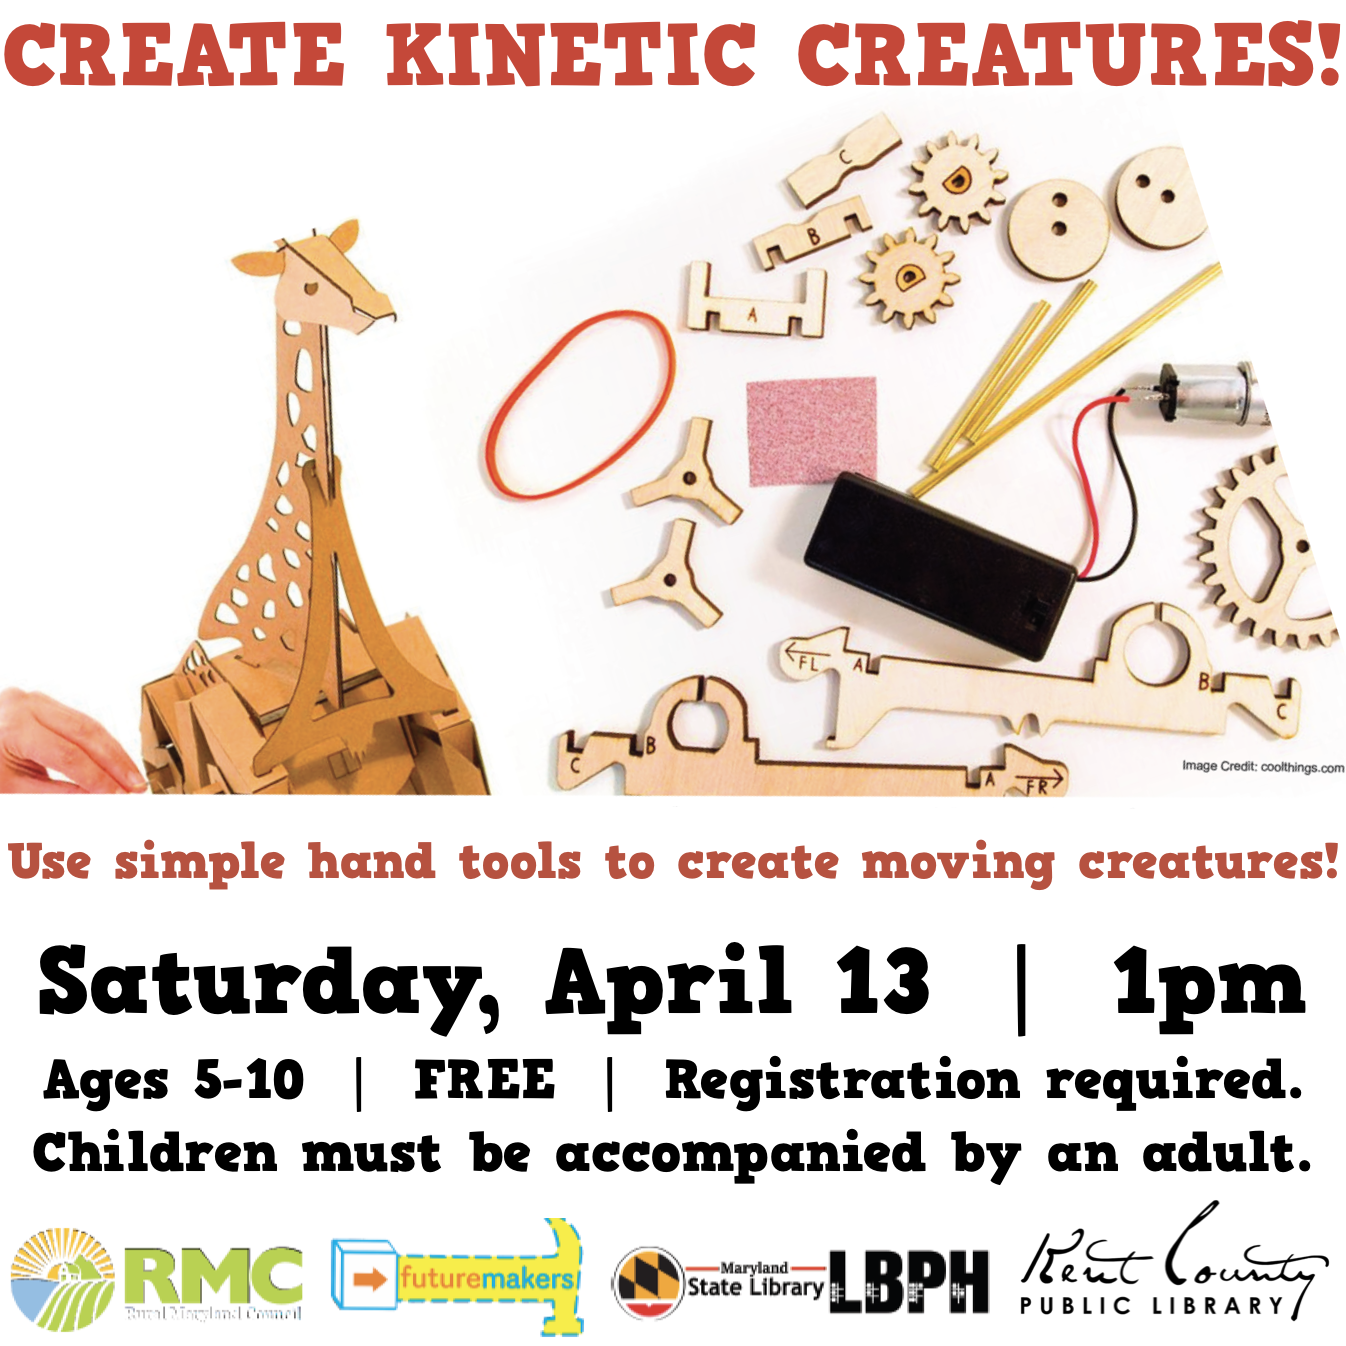 Kinetic Creatures! Presented by Futuremakers